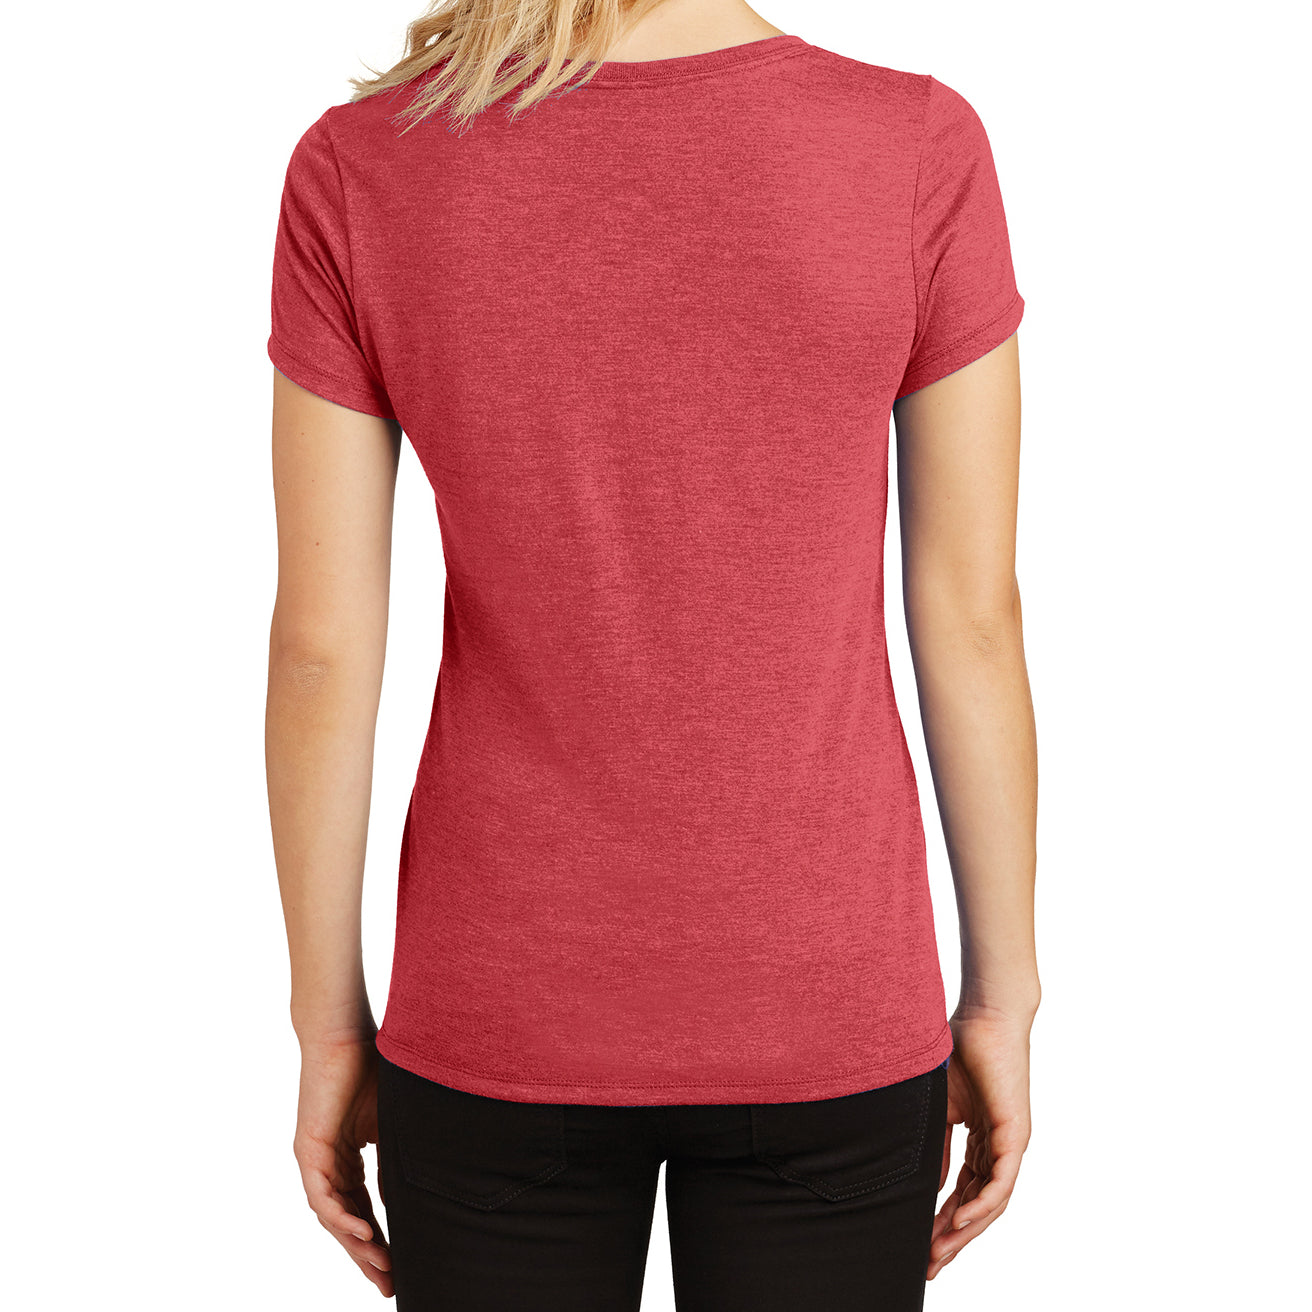 Women's Perfect Tri V-Neck Tee - Red Frost - Back